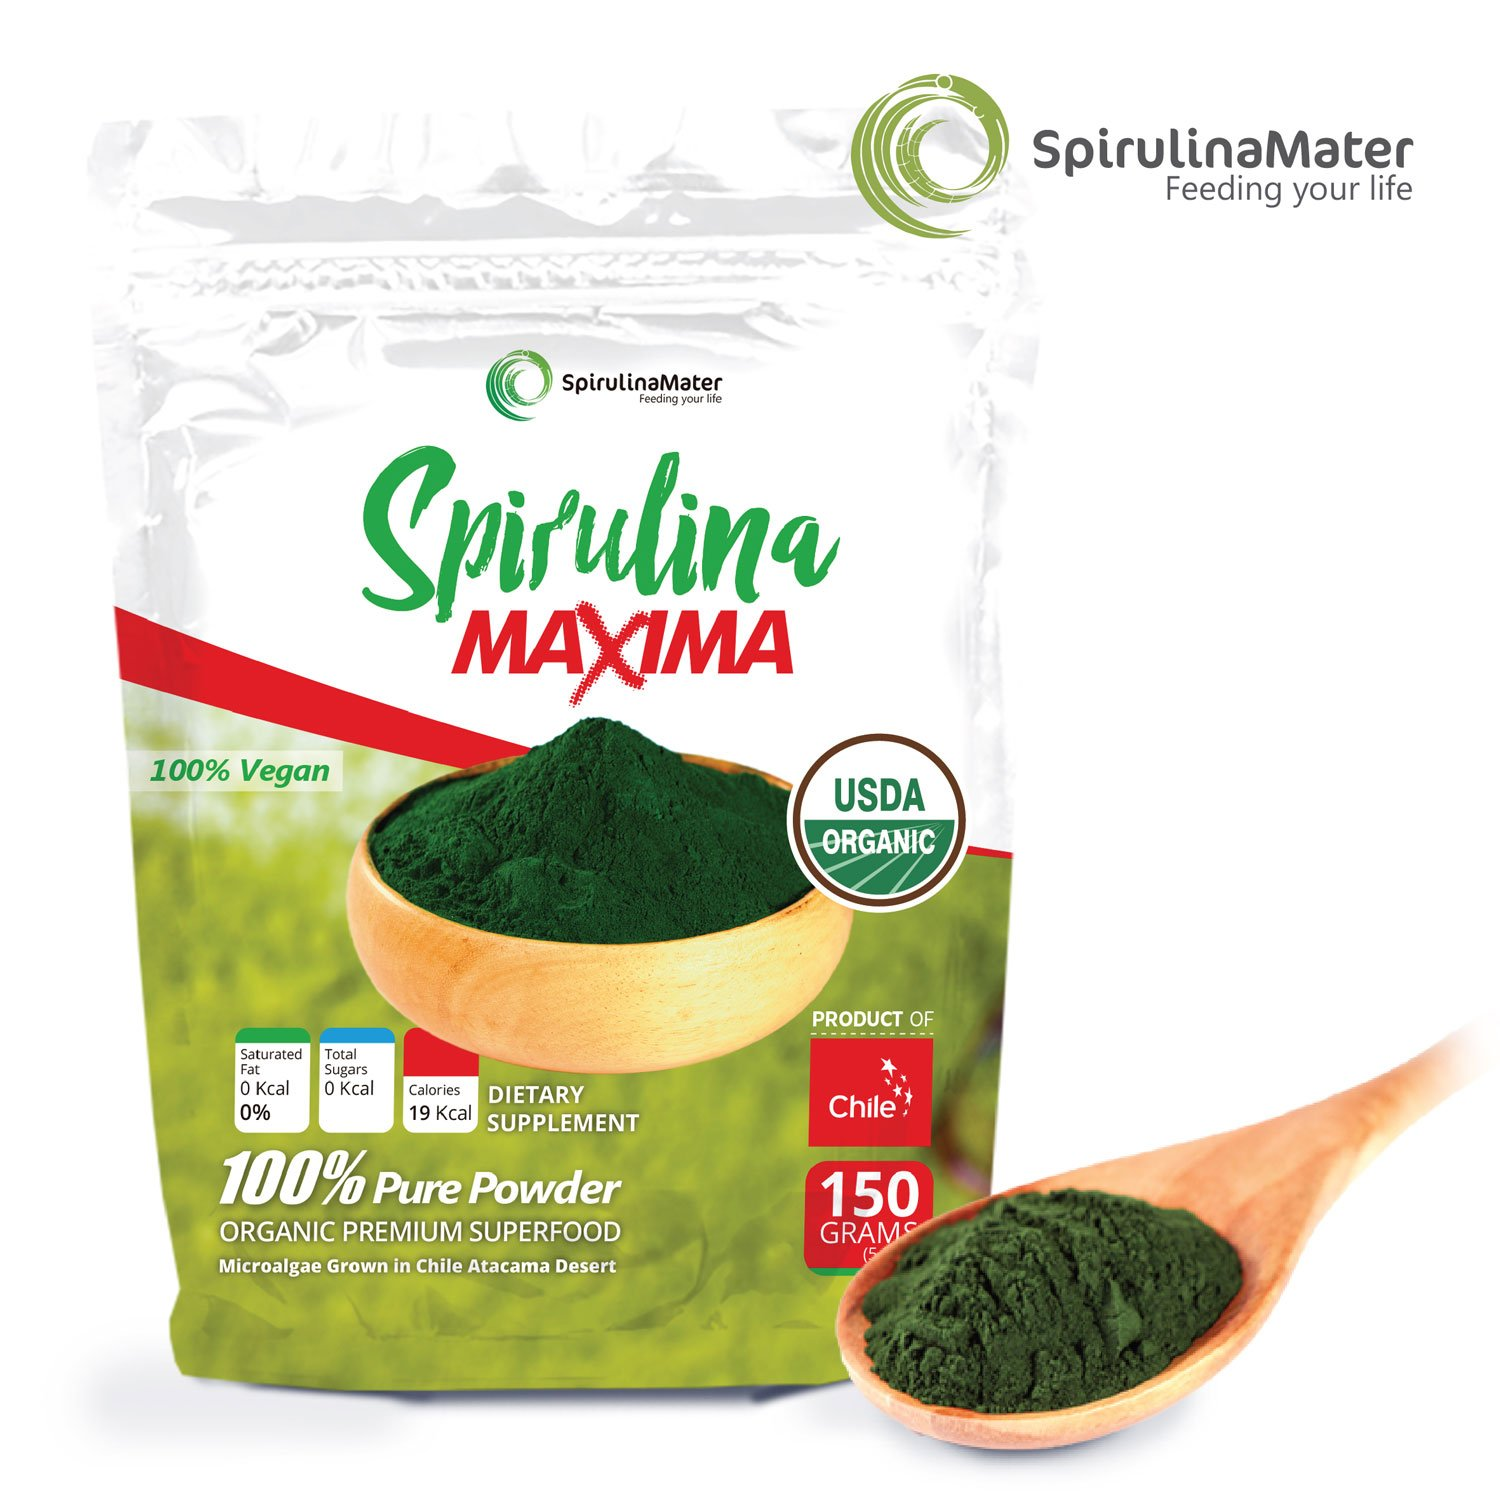 Amazon.com: Spirulina Protein Powder 10.5 Oz (300 Grams, 0.66 Lbs) by SPIRULINA MATER - Blue Green Algae Superfood – Vegan Organic Protein Powder - Gluten ...